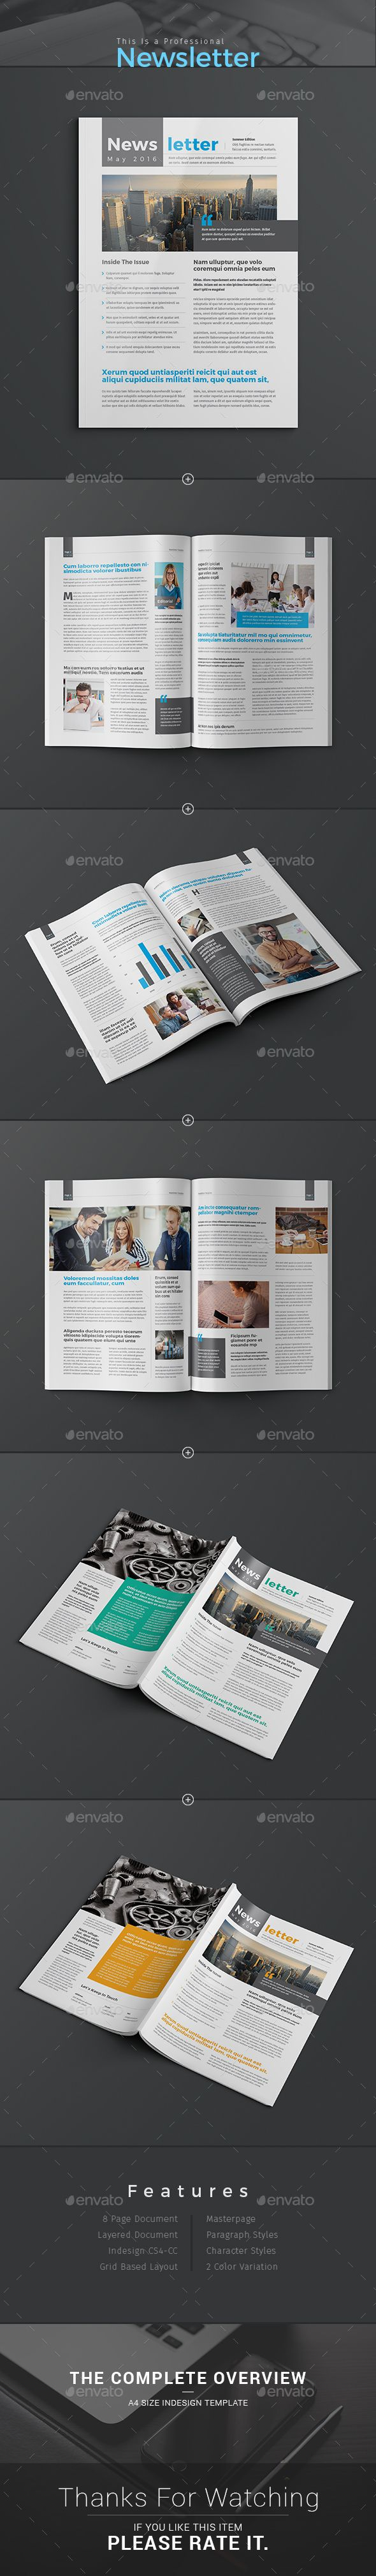 8 page InDesign Company / Business Newsletter Template; Ready to use for Business Newsletter, Company Newsletter, Corporate Newsletter, Organization newsletter, institutions or Multipurpose Newsletter. http://graphicriver.net/item/newsletter-template/15418299?ref=themedevisers